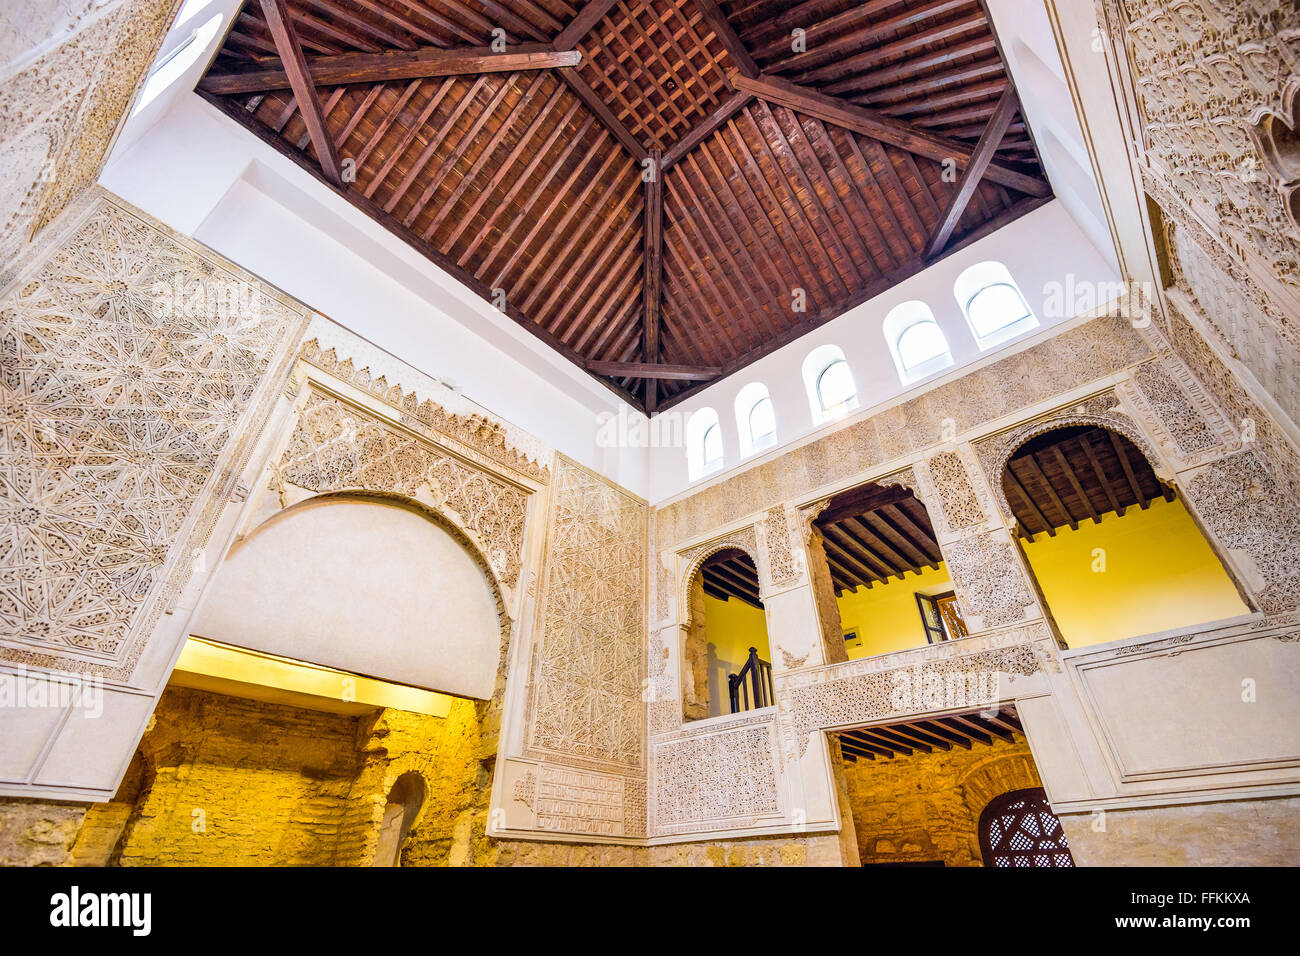 The Cordoba Synagogue interior in Cordoba, Spain. - Stock Image